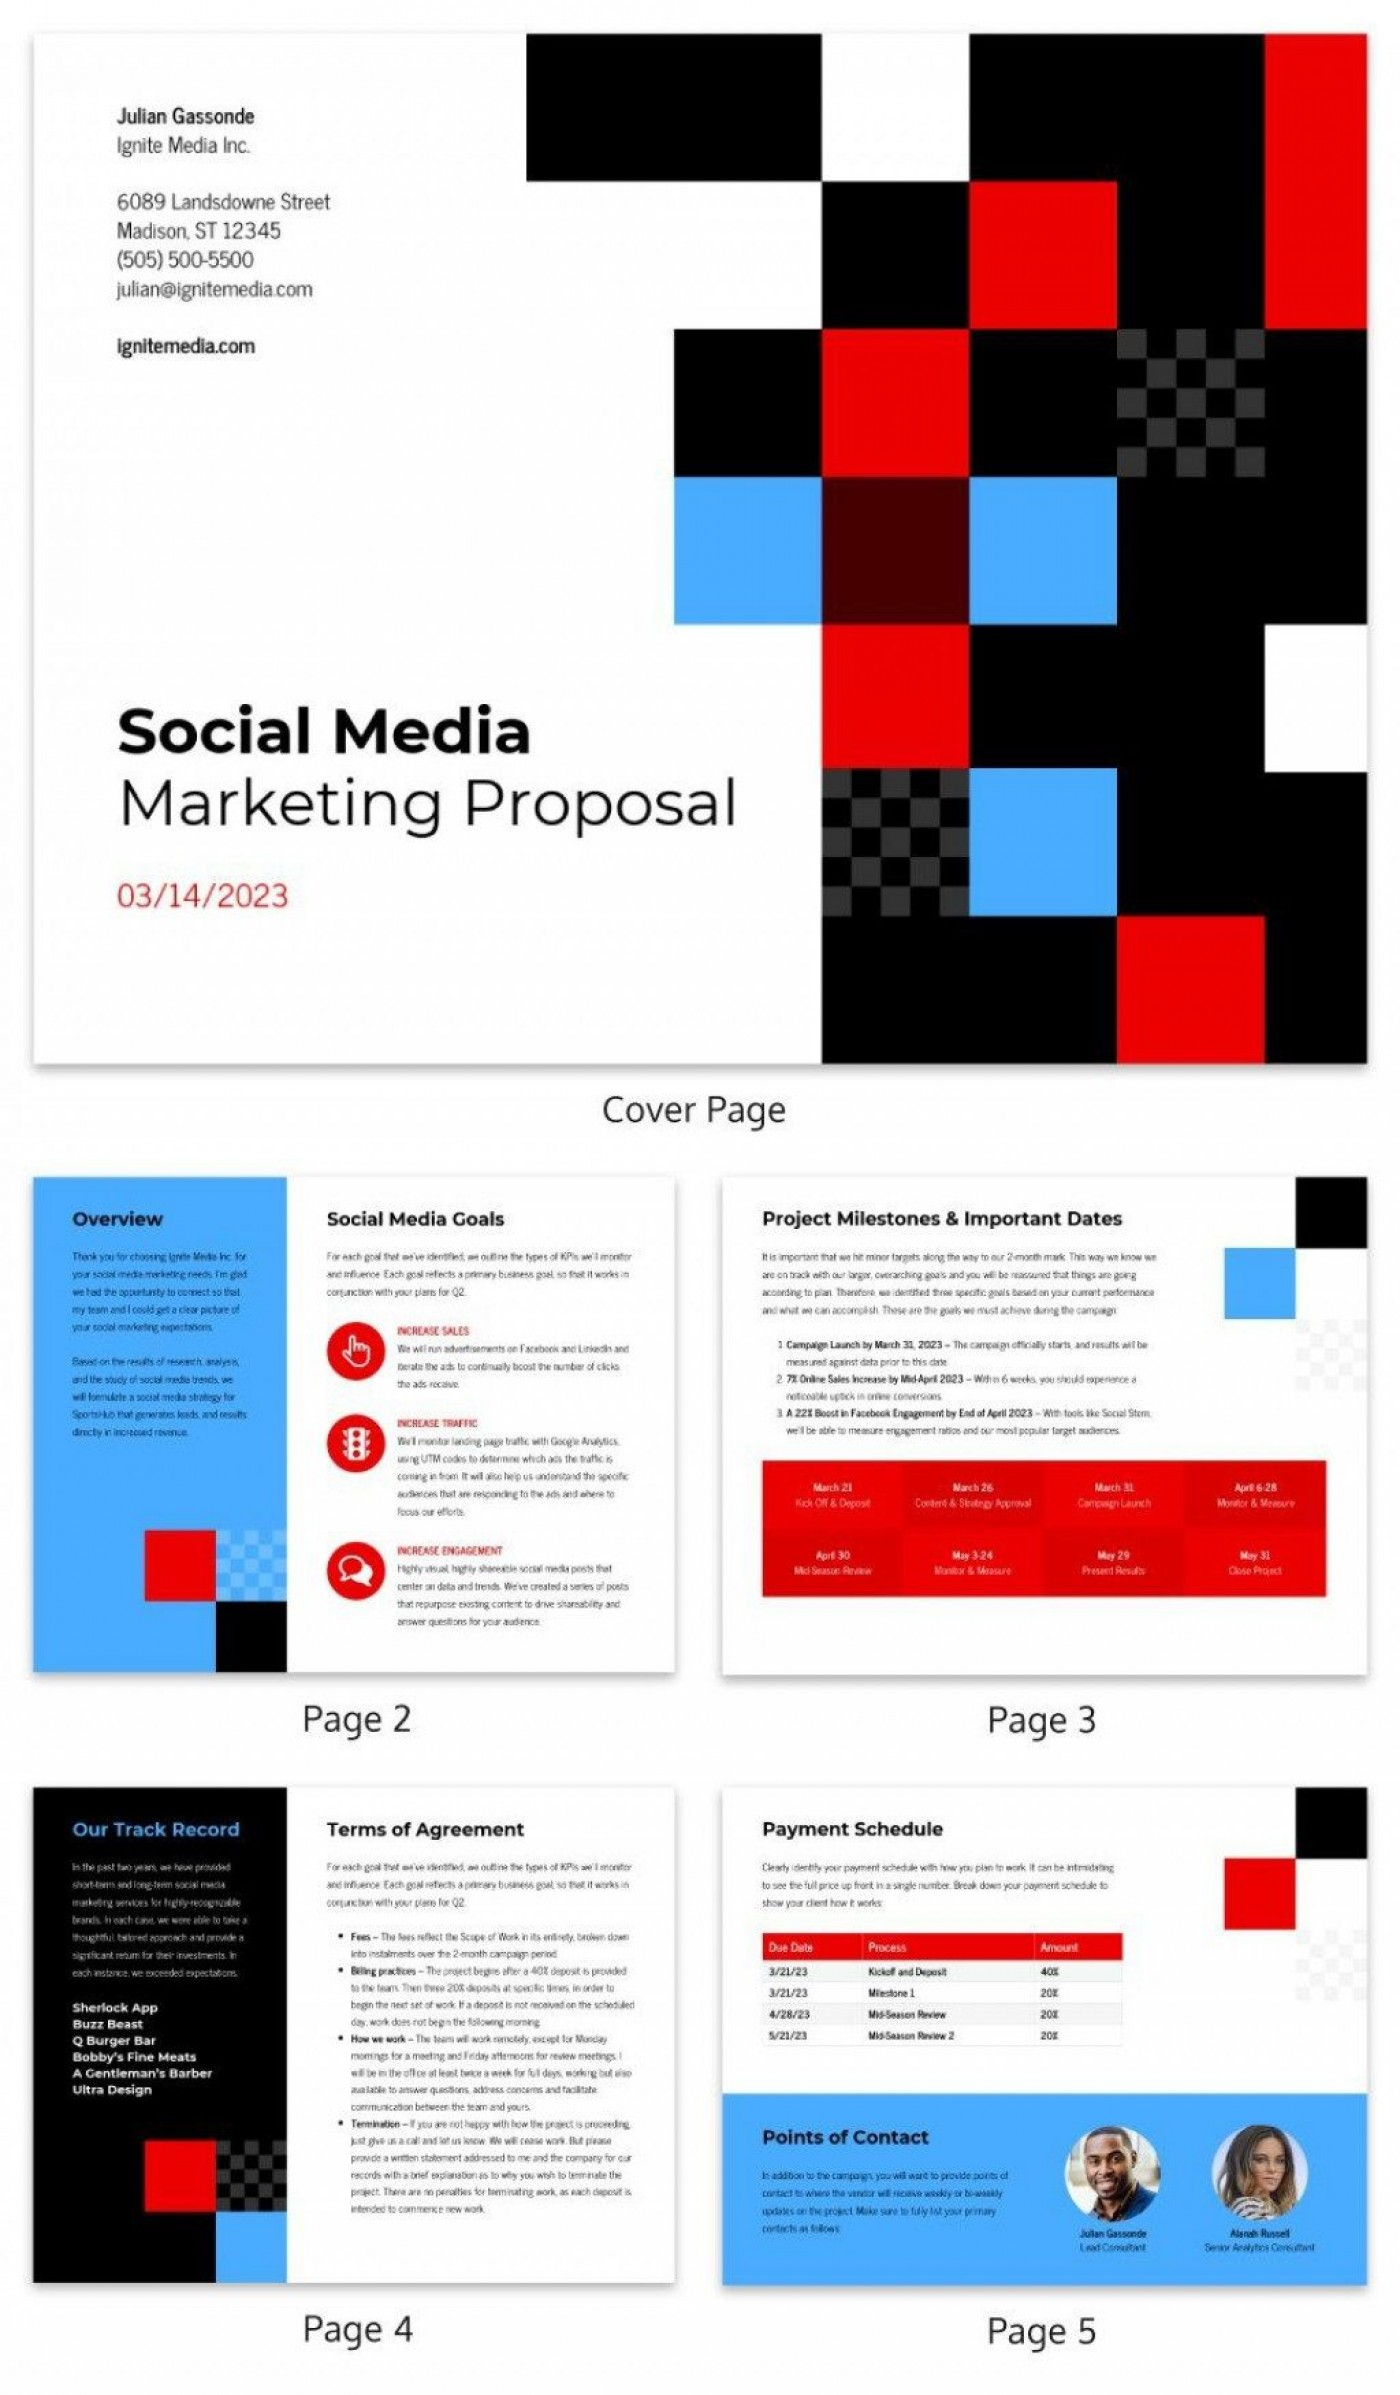 004 Fascinating Social Media Proposal Template Ppt High Def 1400